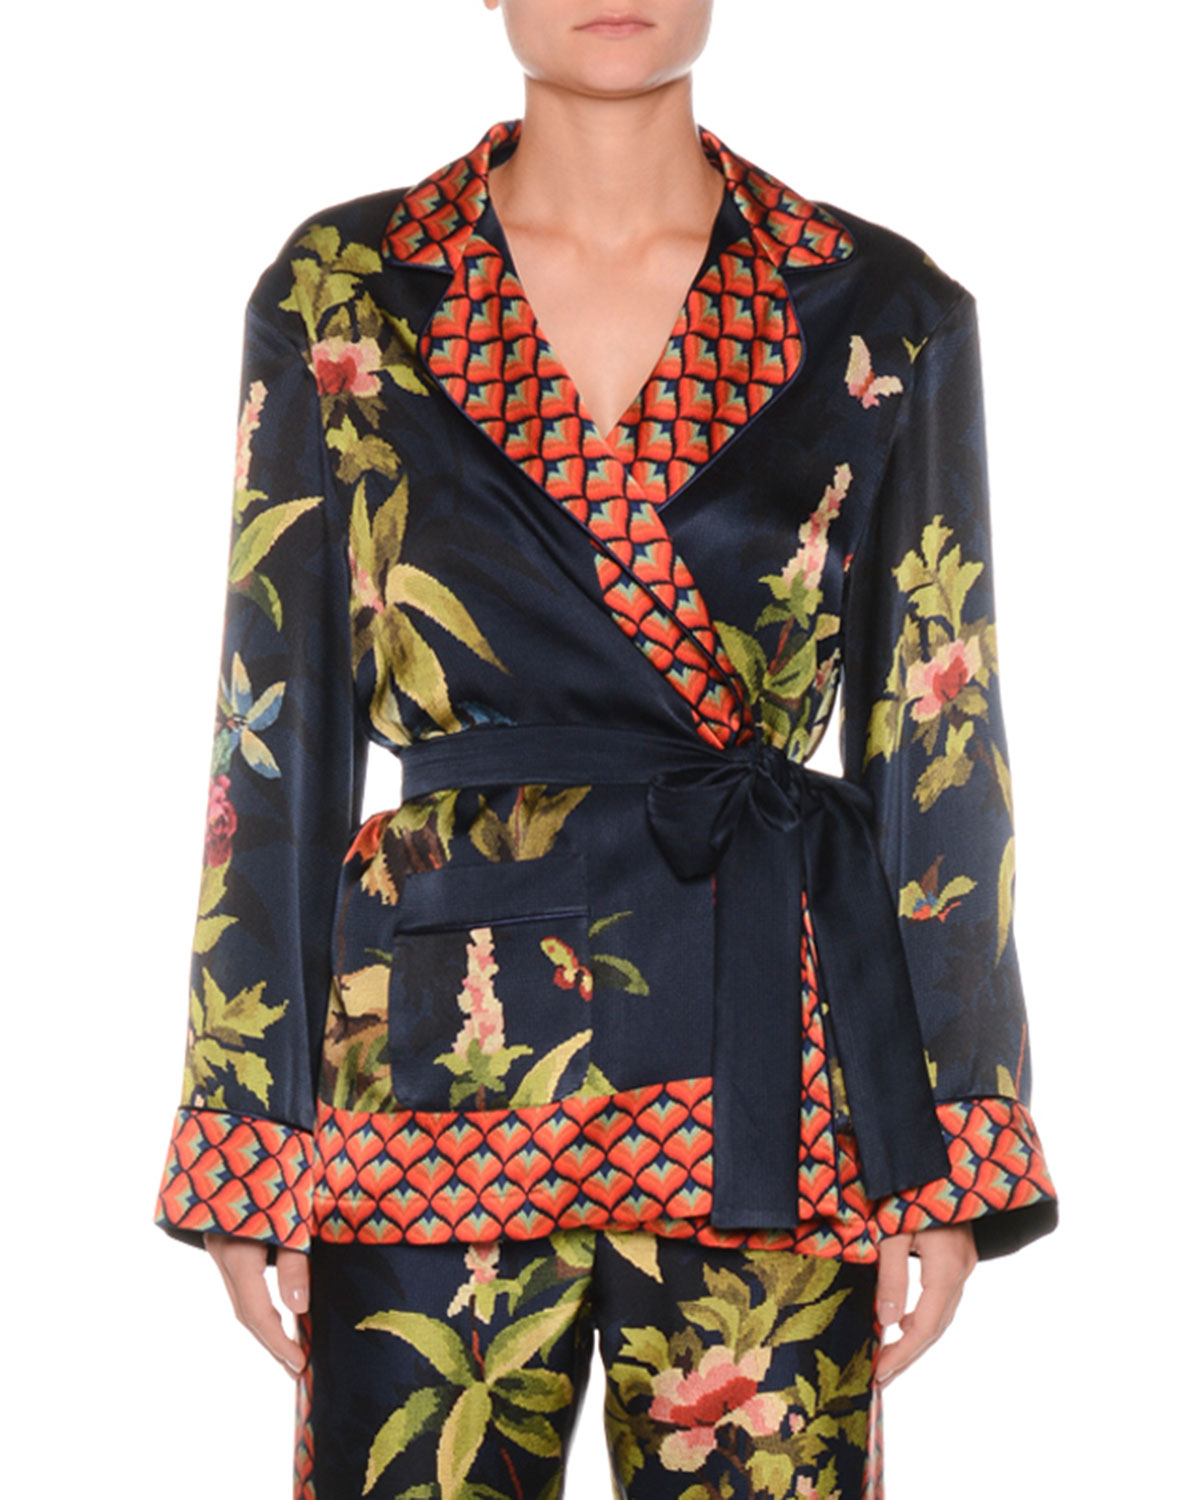 Jungle Foliage Needlepoint Silk Crepe Wrap Blouse Jacket w/ Border